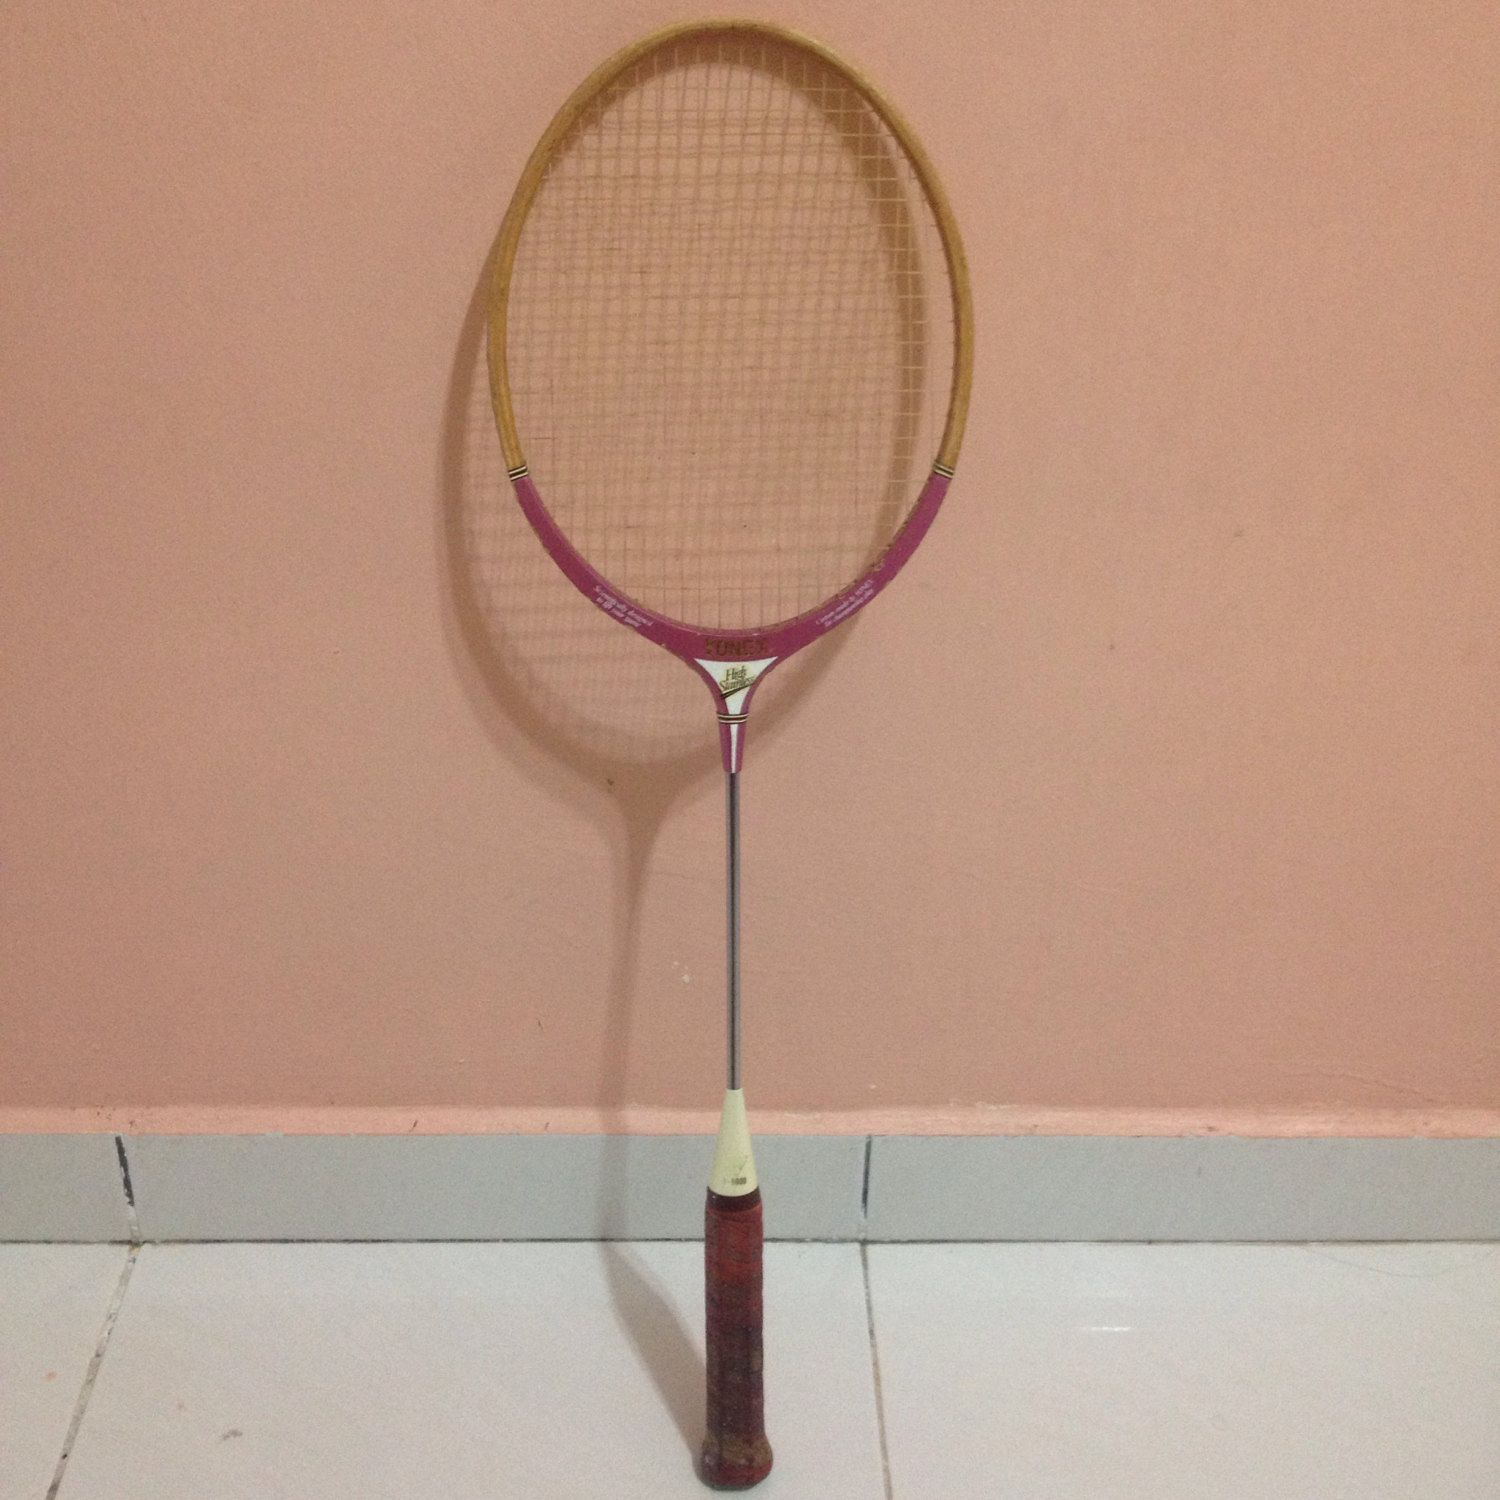 Super Rare Vintage 70s Yonex B9000 Wooden Racquet High Stainless By Bintangclothingstore On Etsy Https Www Etsy C Yonex Vintage 70s Yonex Badminton Racket